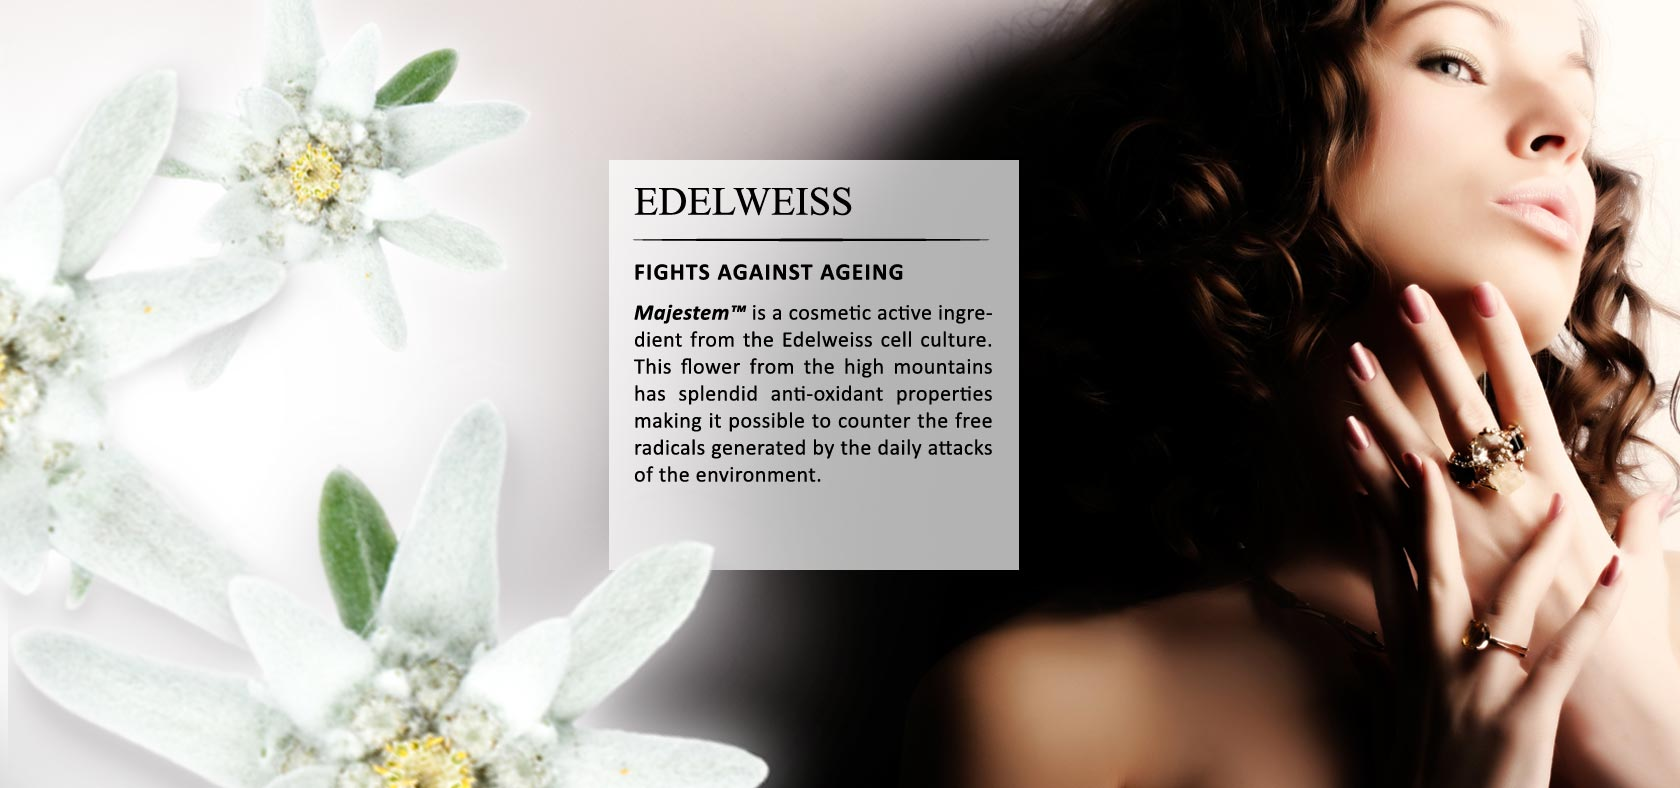 Majestem© is a cosmetic active ingredient from the Edelweiss cell culture. This flower from the high mountains has splendid anti-oxidant properties making it possible to counter the free radicals generated by the daily attacks of the environment.